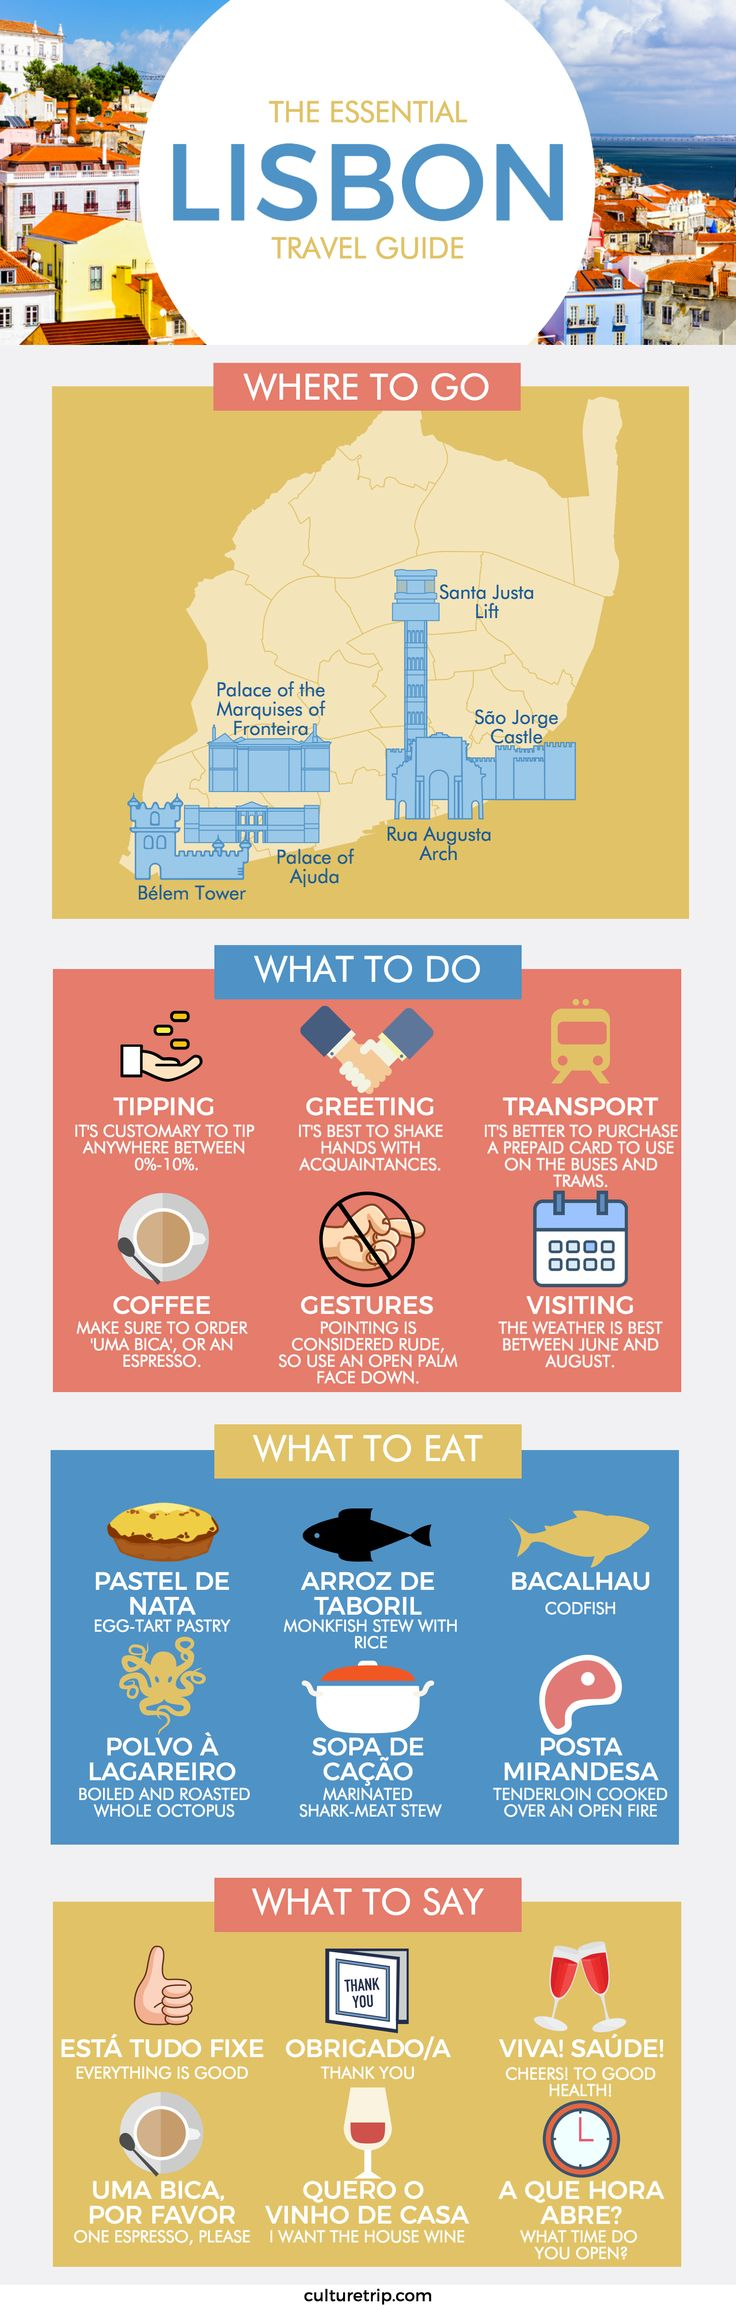 The Ultimate Travel Guide to Lisbon (Infographic)